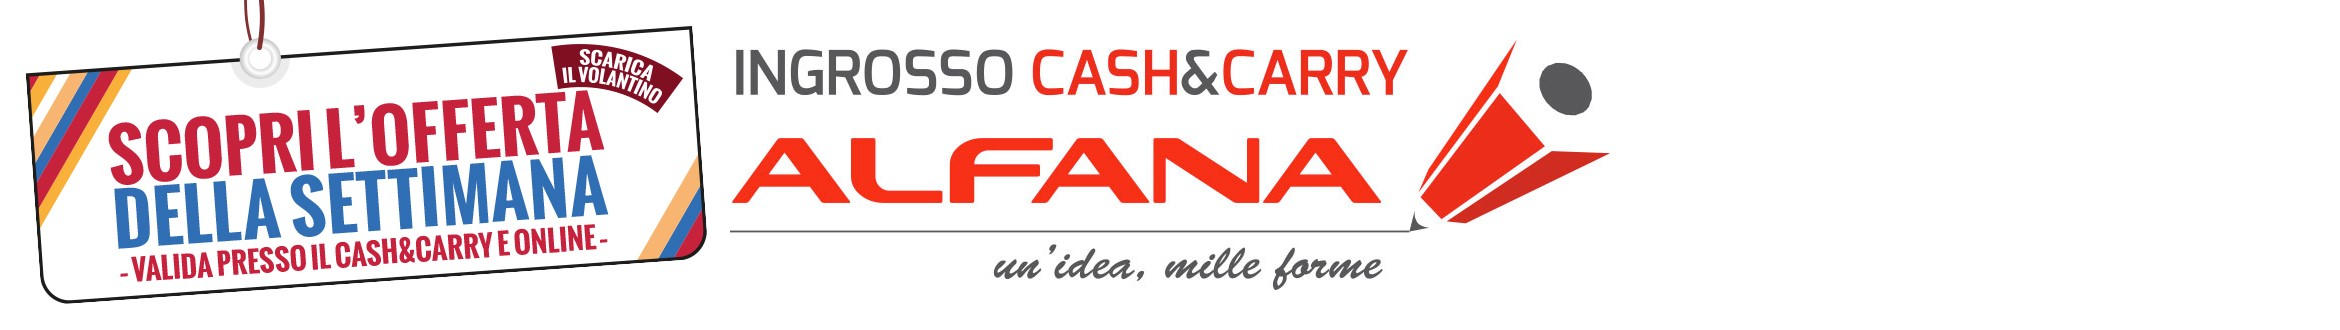 Alfana Cash & Carry